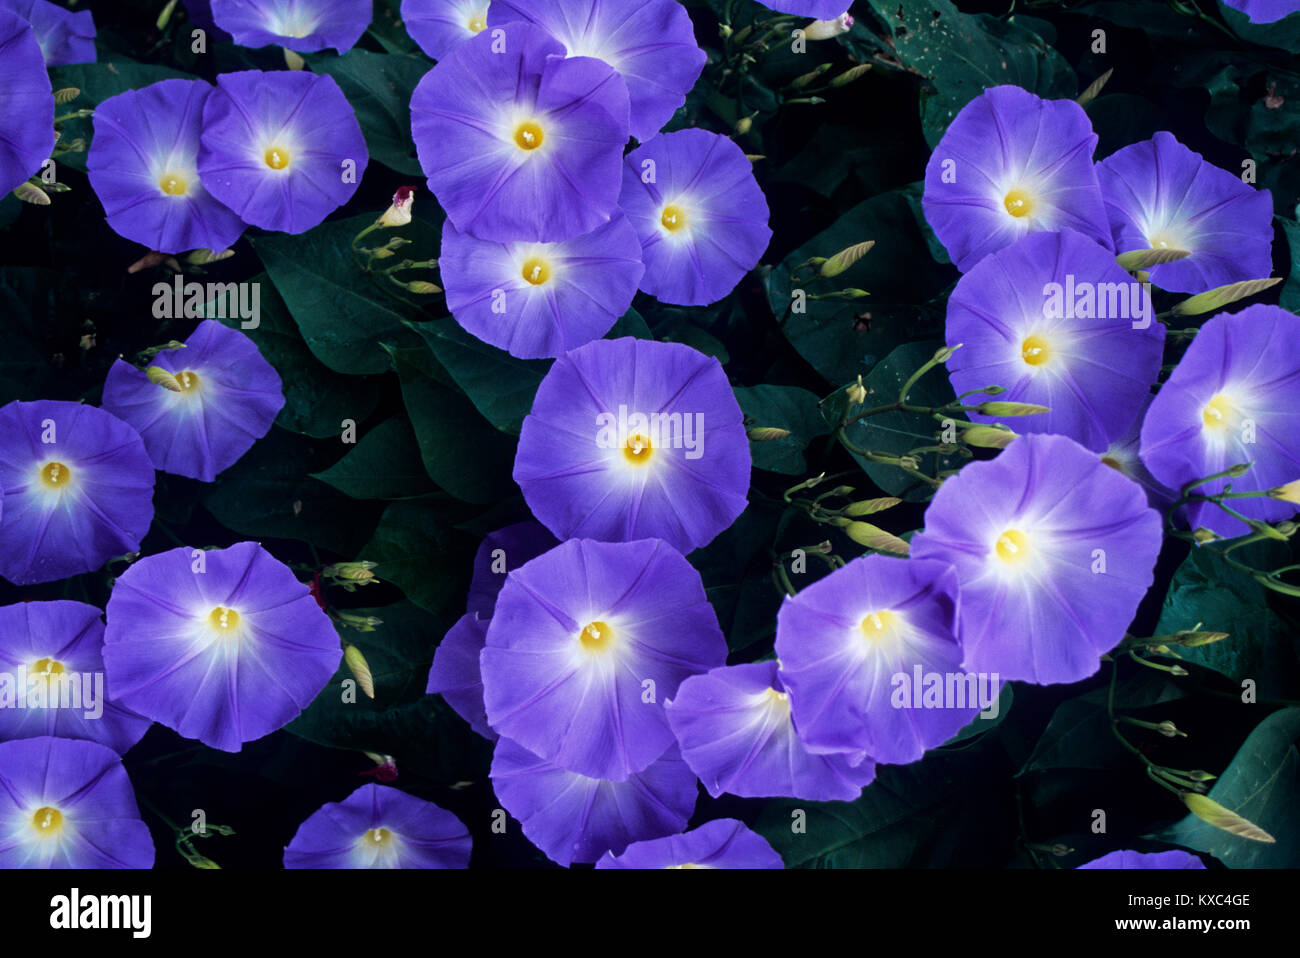 Morning Glories, Bird in Hand, Pennsylvania, USA, Amish country - Stock Image